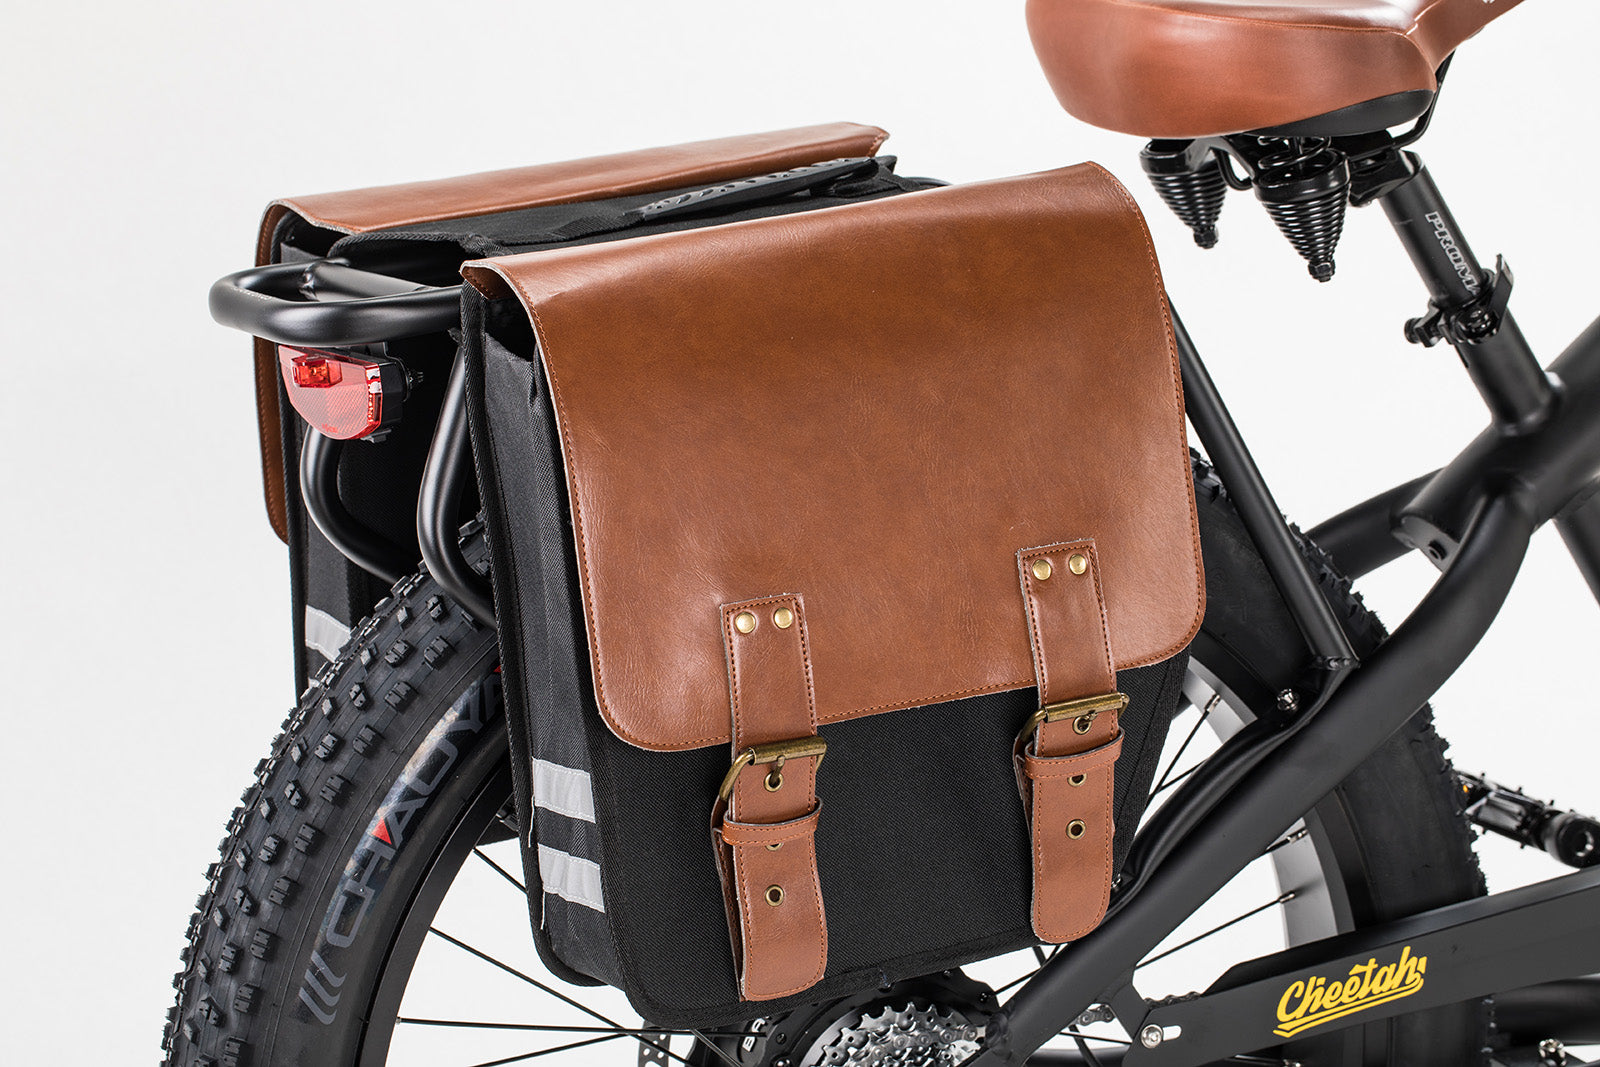 Rear Pannier for Cheetah - Back Order - ETA 11/30th